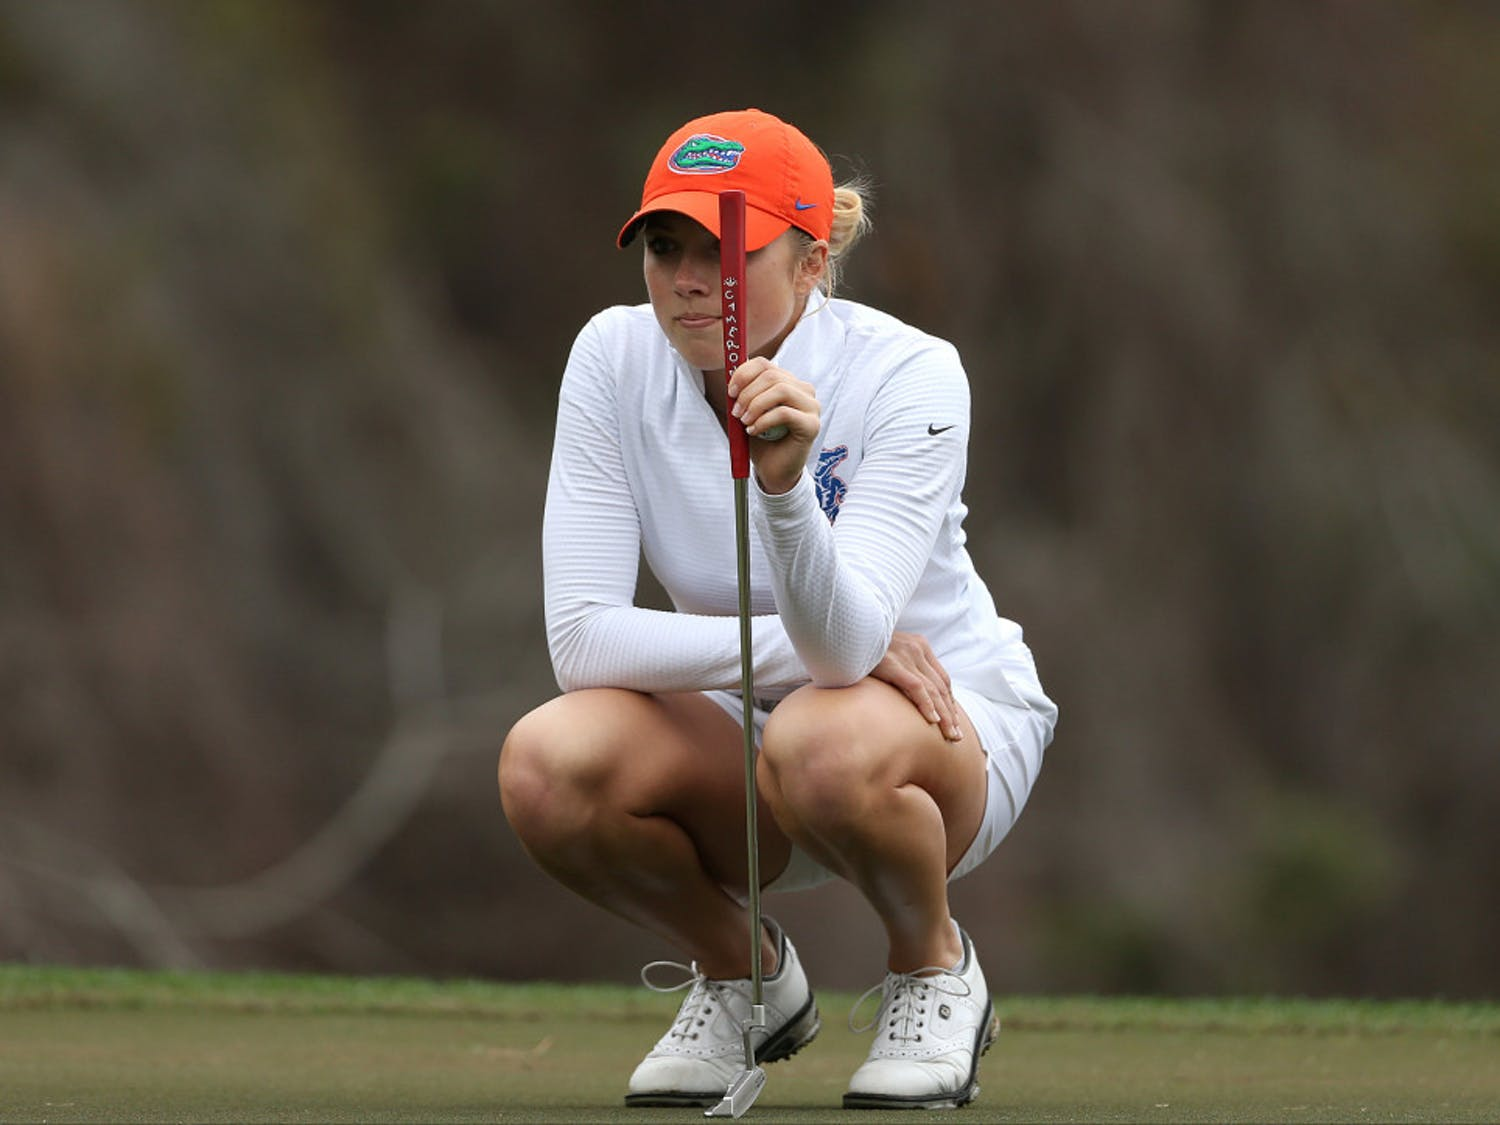 Sophomore Sierra Brooks led the Gators, shooting two under in the first round of the NCAA Regional.